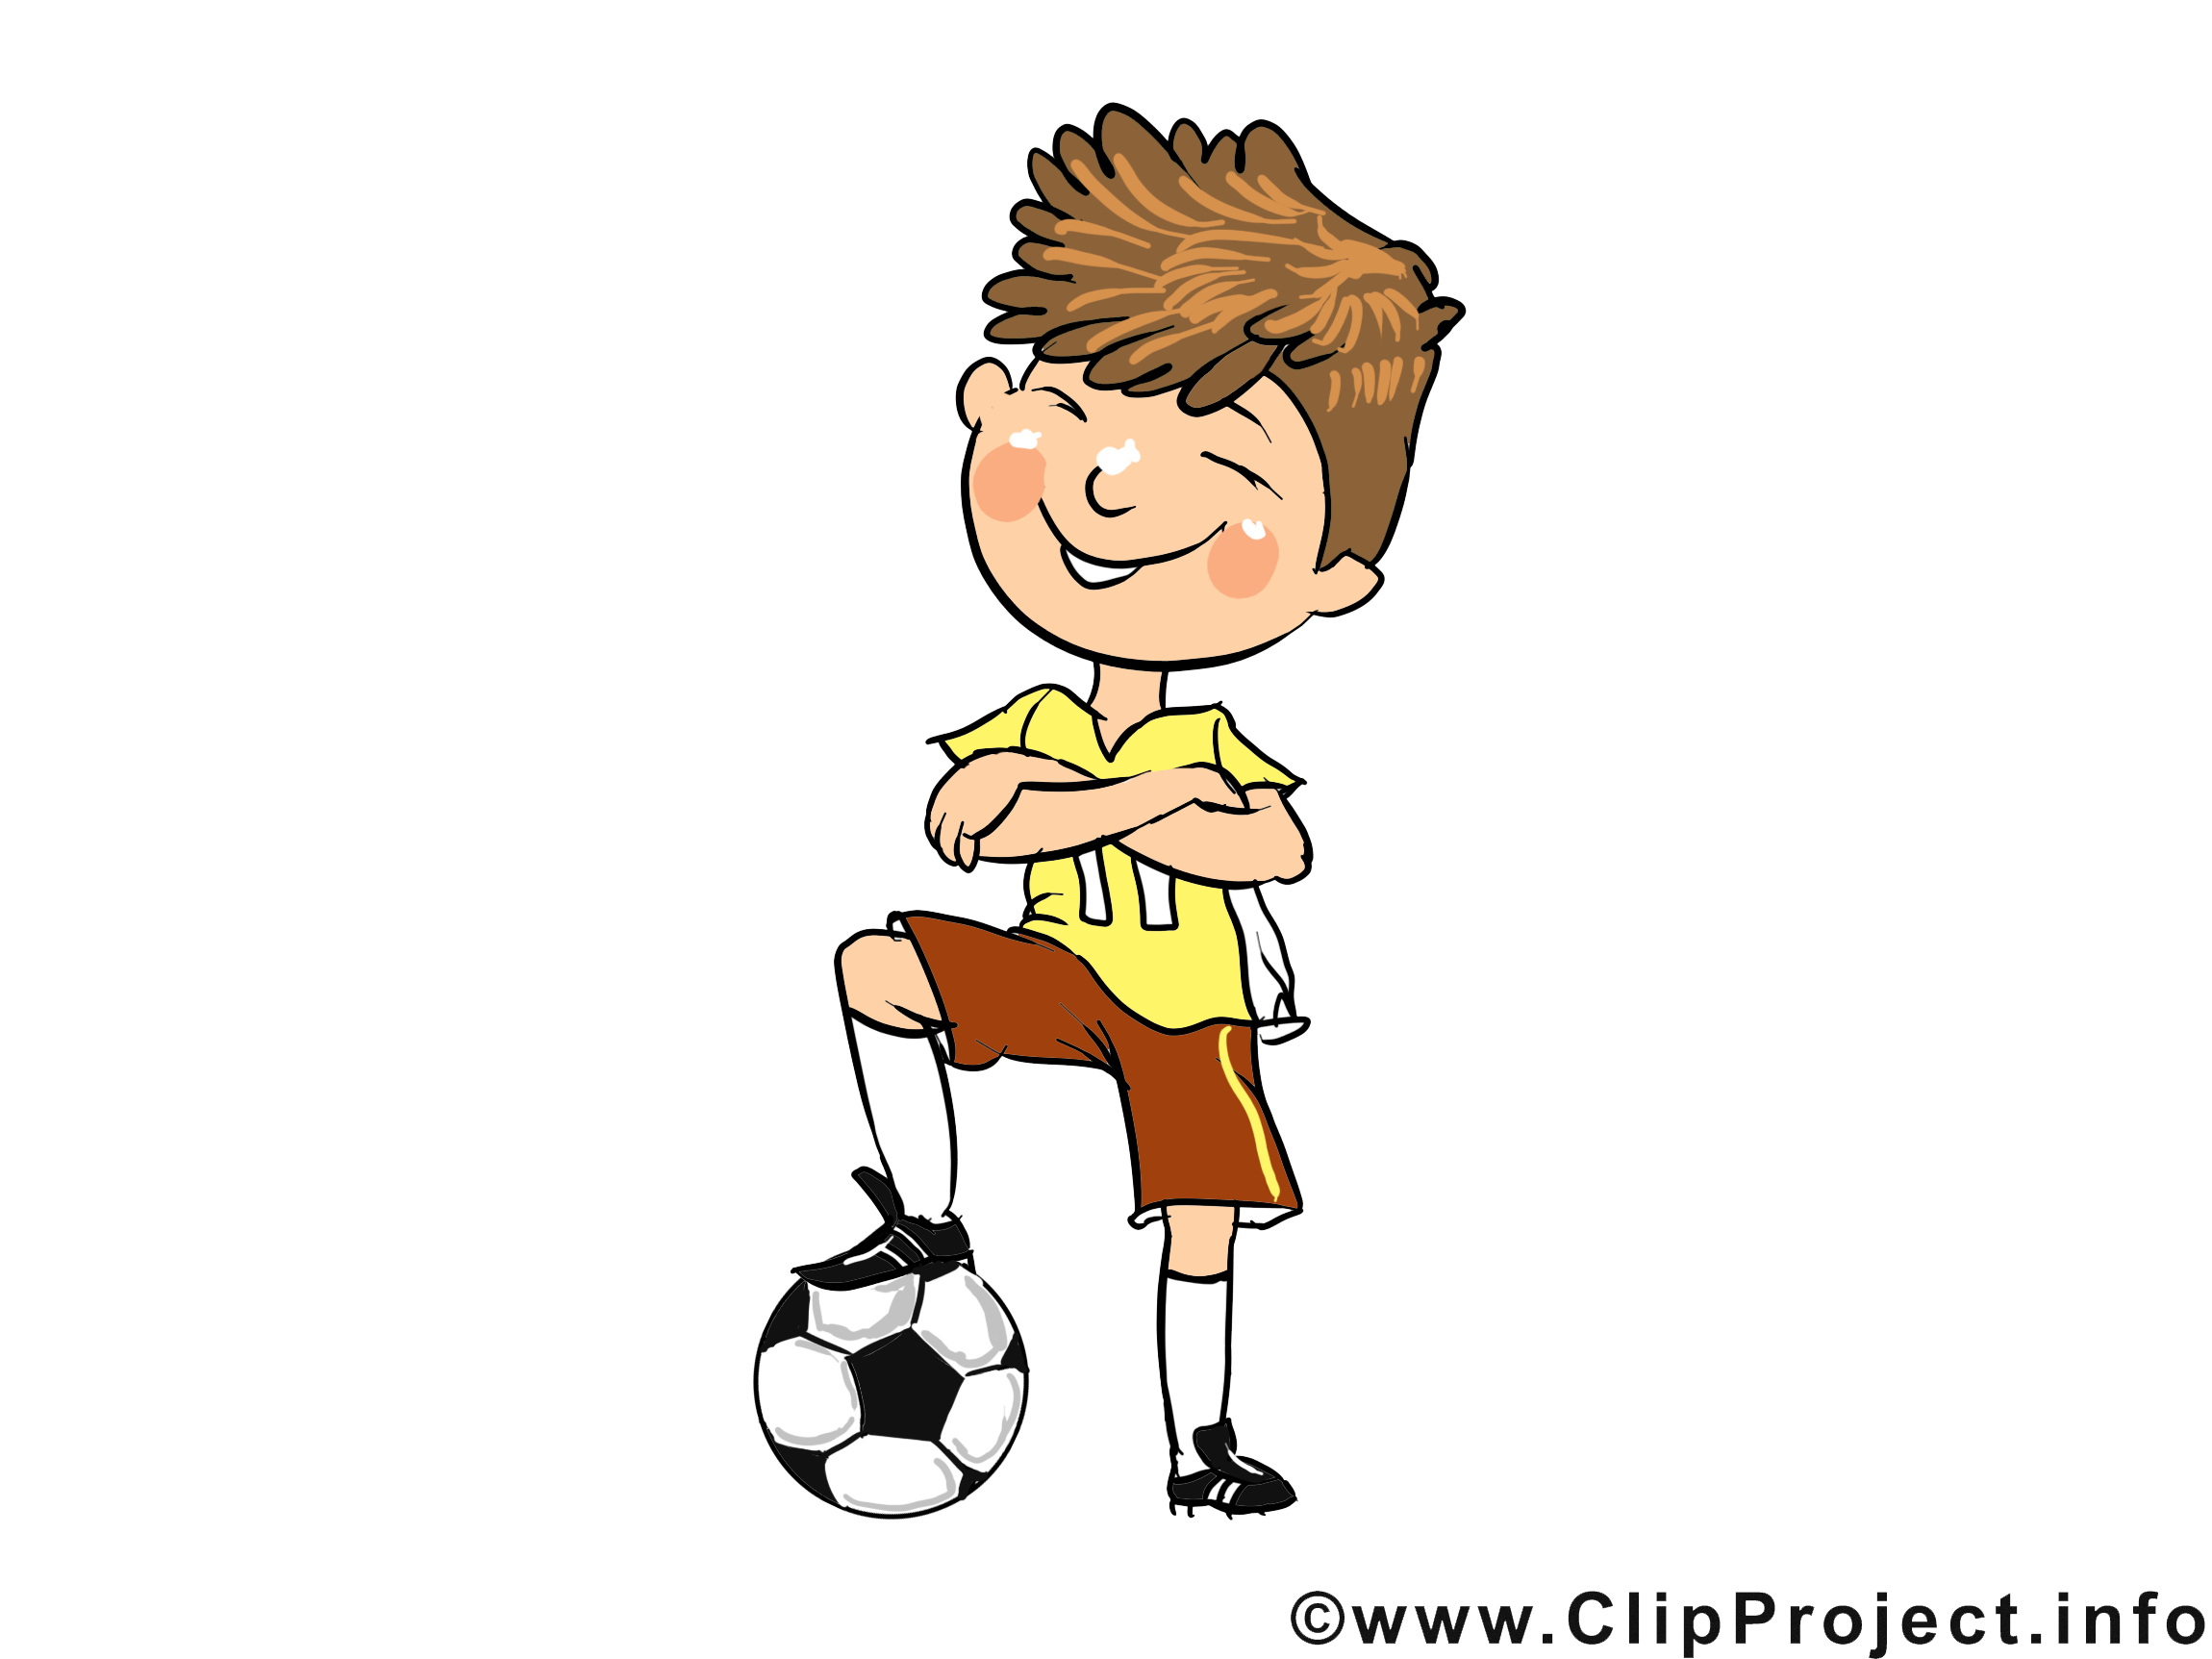 Footballeur clip art gratuit - Profession dessin